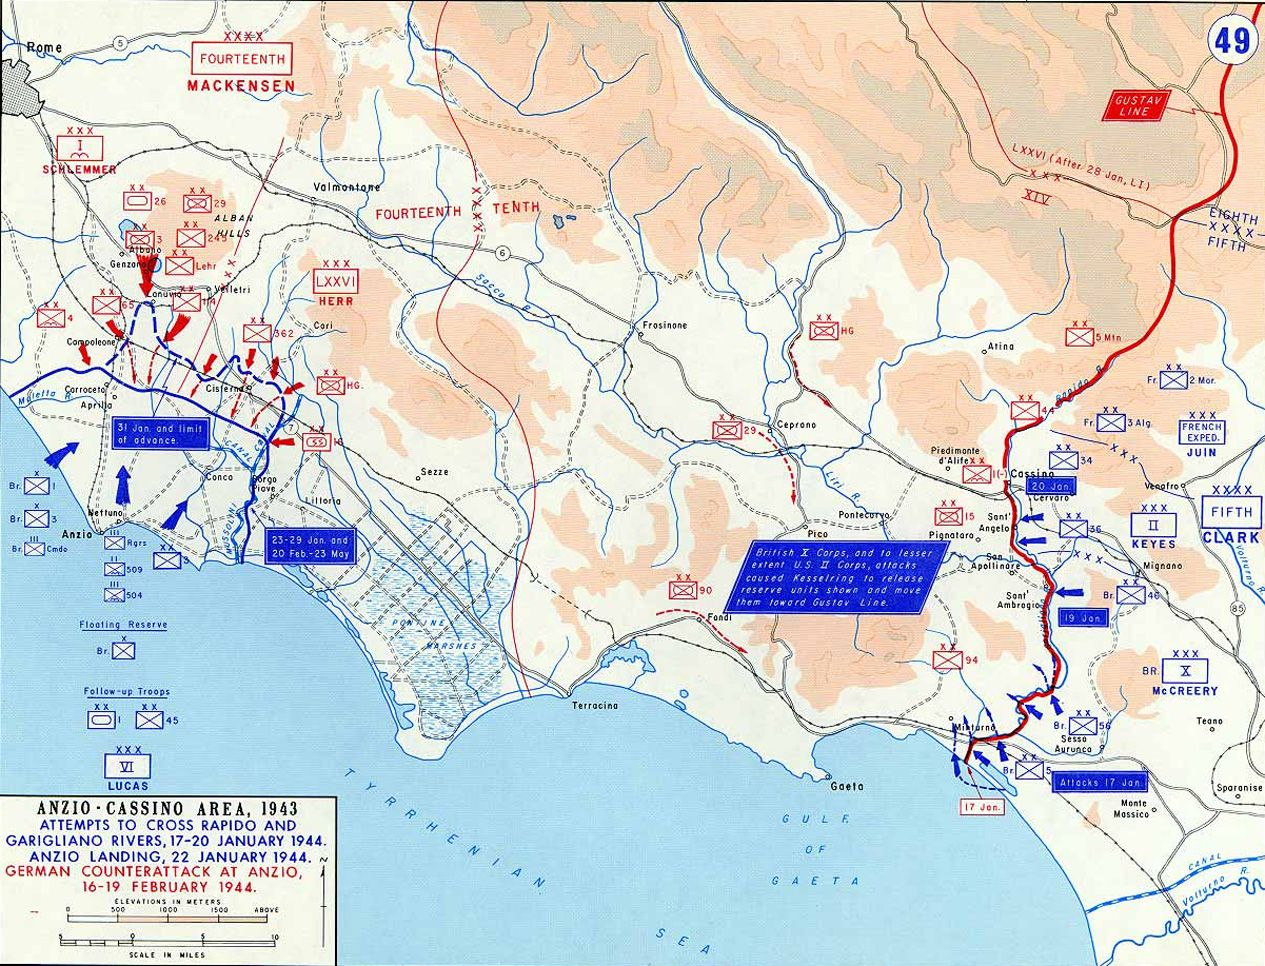 Early in 1943 the Allies landed at Anzio, well north of the Gustav Line where the Germans were blocking the Allied push north. But they were surrounded for months until breaking through as the Normandy invasion was beginning.